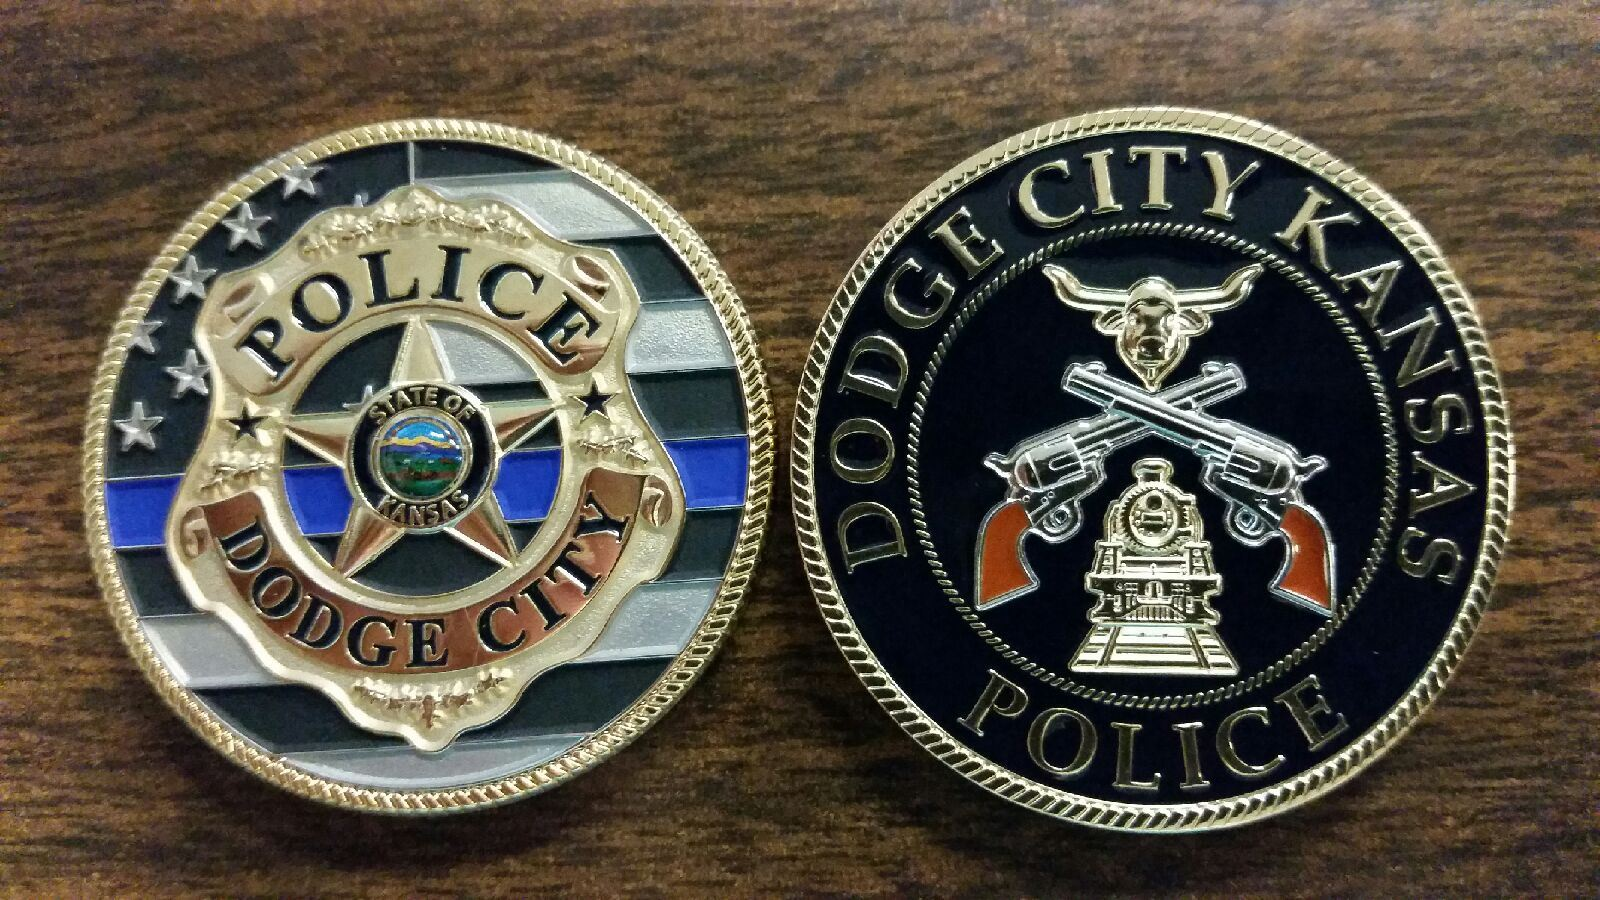 Dodge City Police Department Challenge Coin